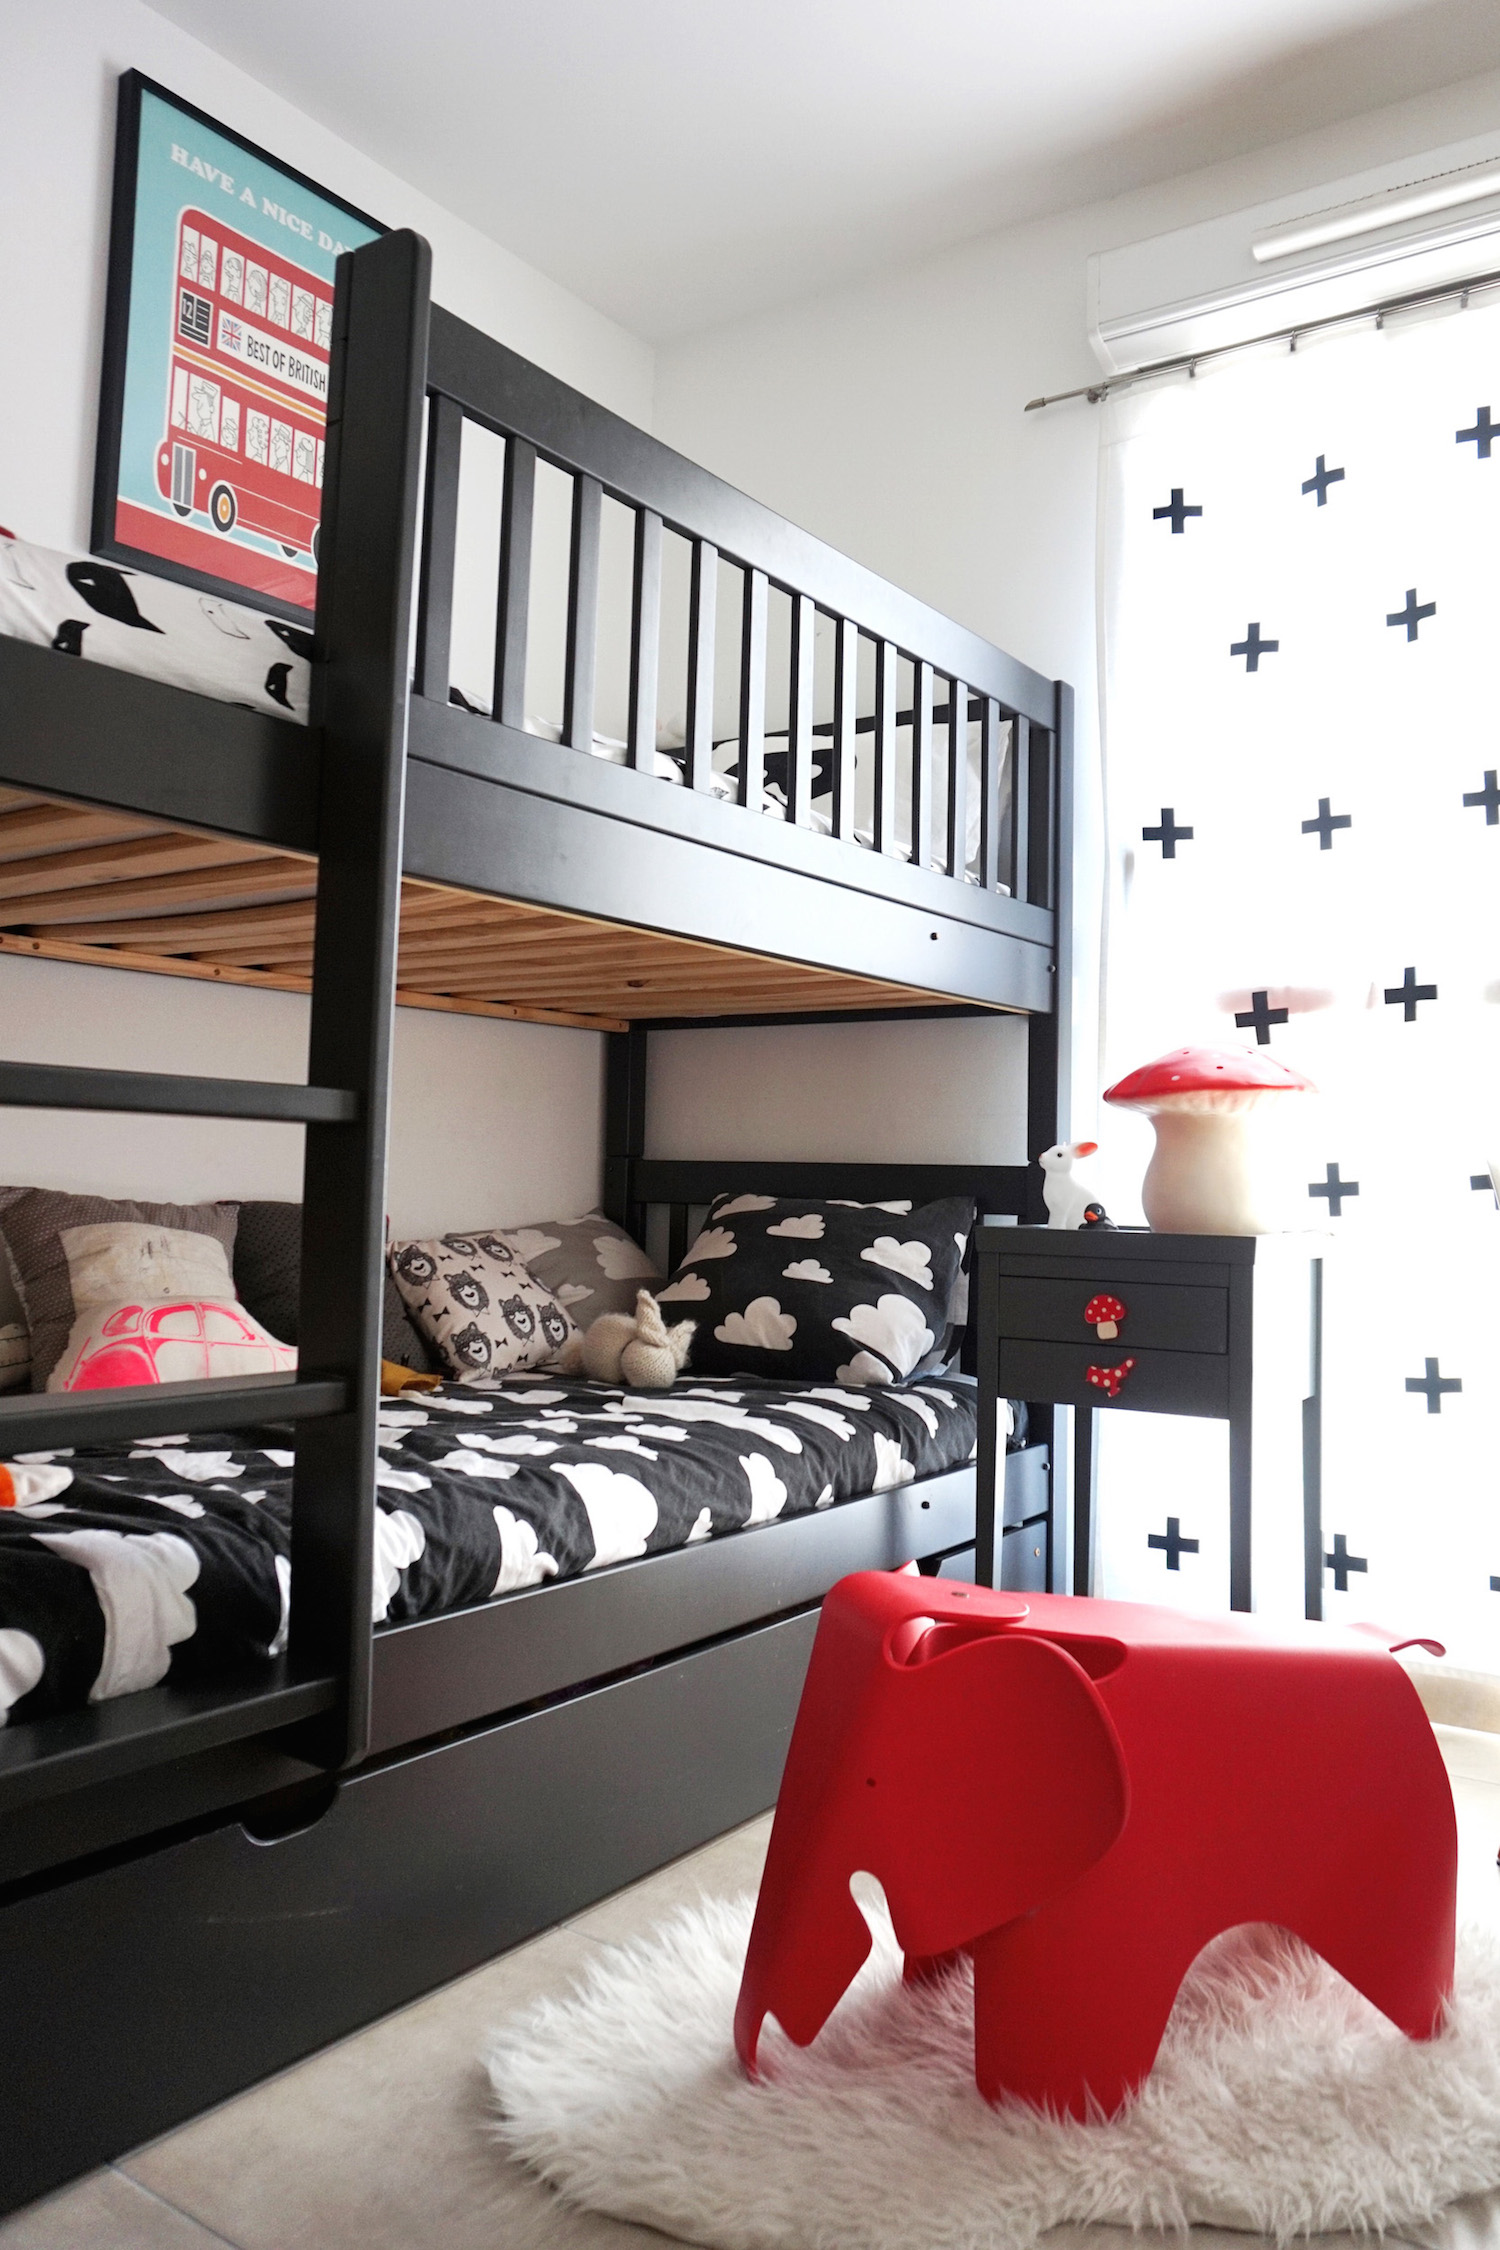 chambre enfant noir et blanc pom hello blogzine 1 h ll blogzine. Black Bedroom Furniture Sets. Home Design Ideas